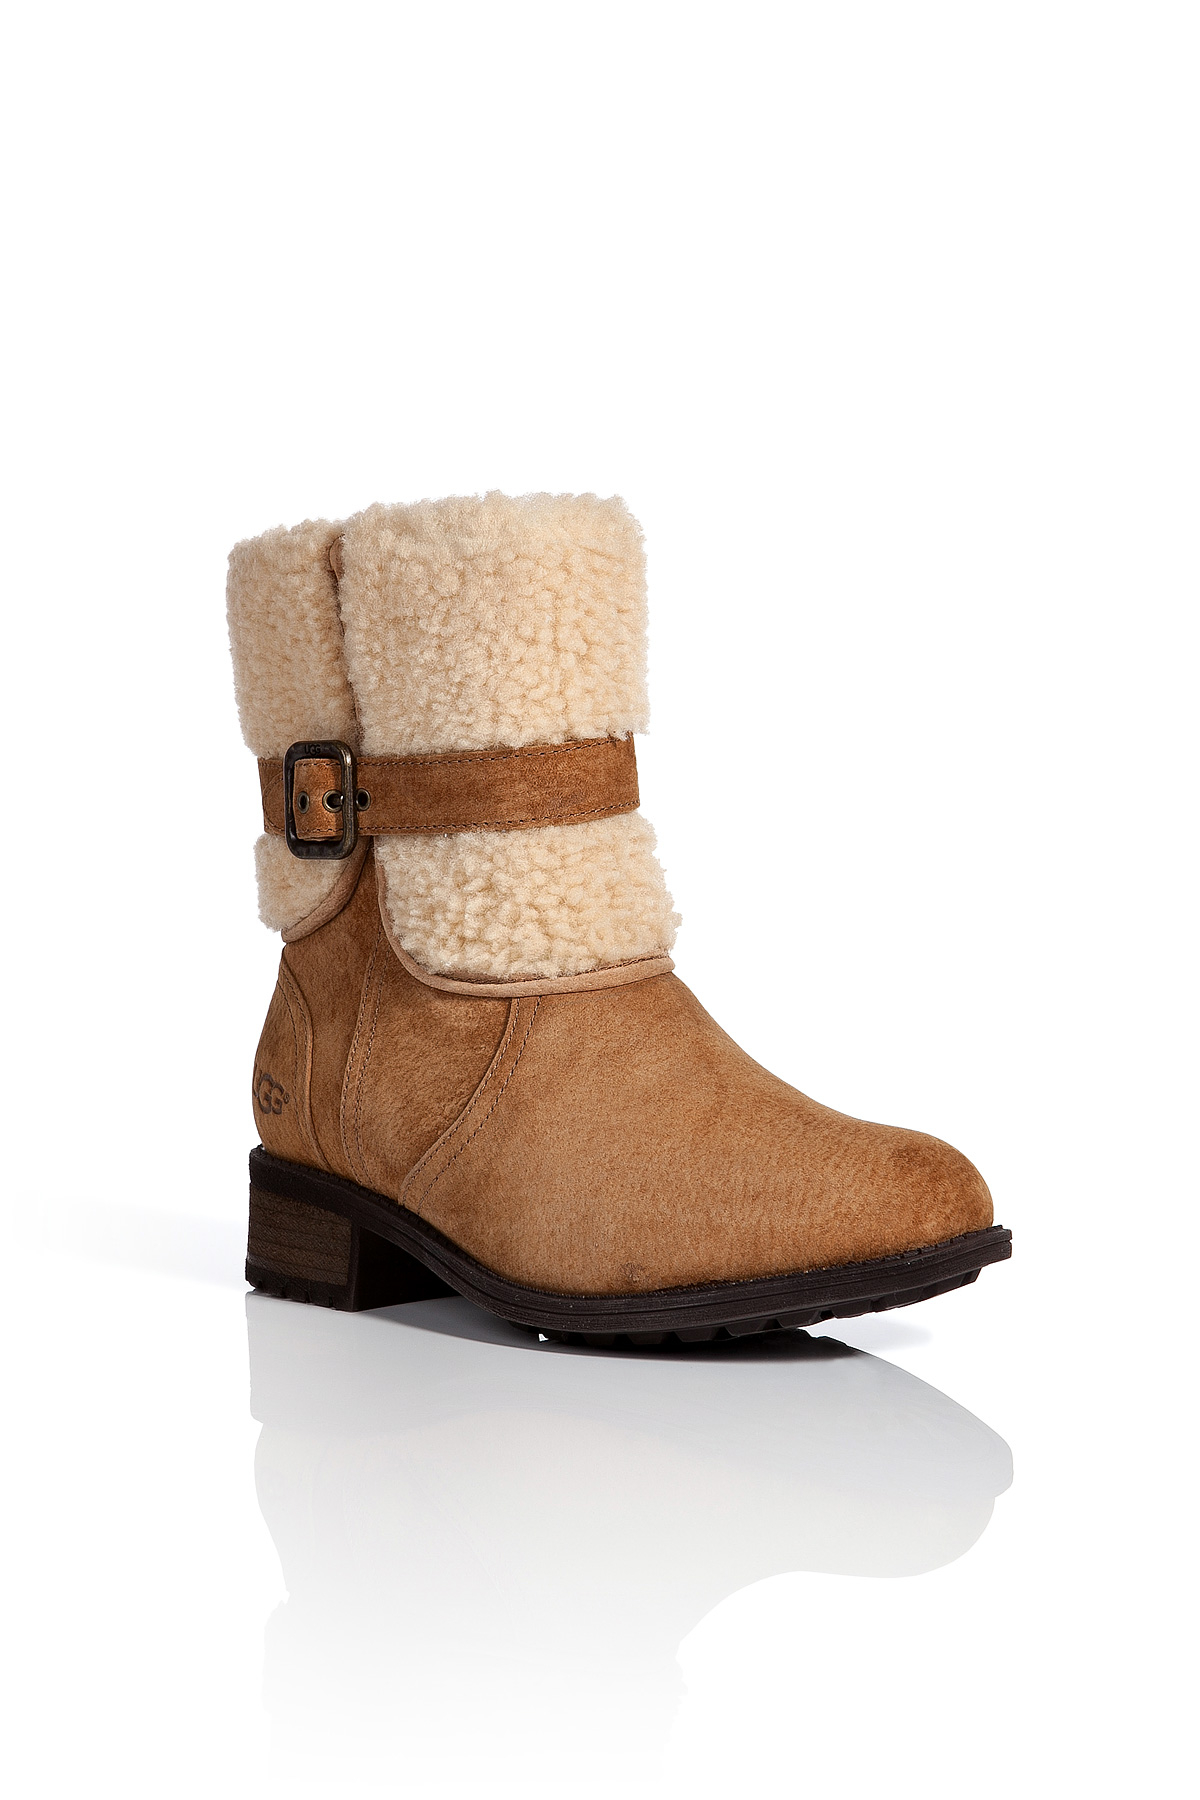 UGG Australia Shearling Suede Ankle Boots outlet best wholesale outlet free shipping 2Ol3g